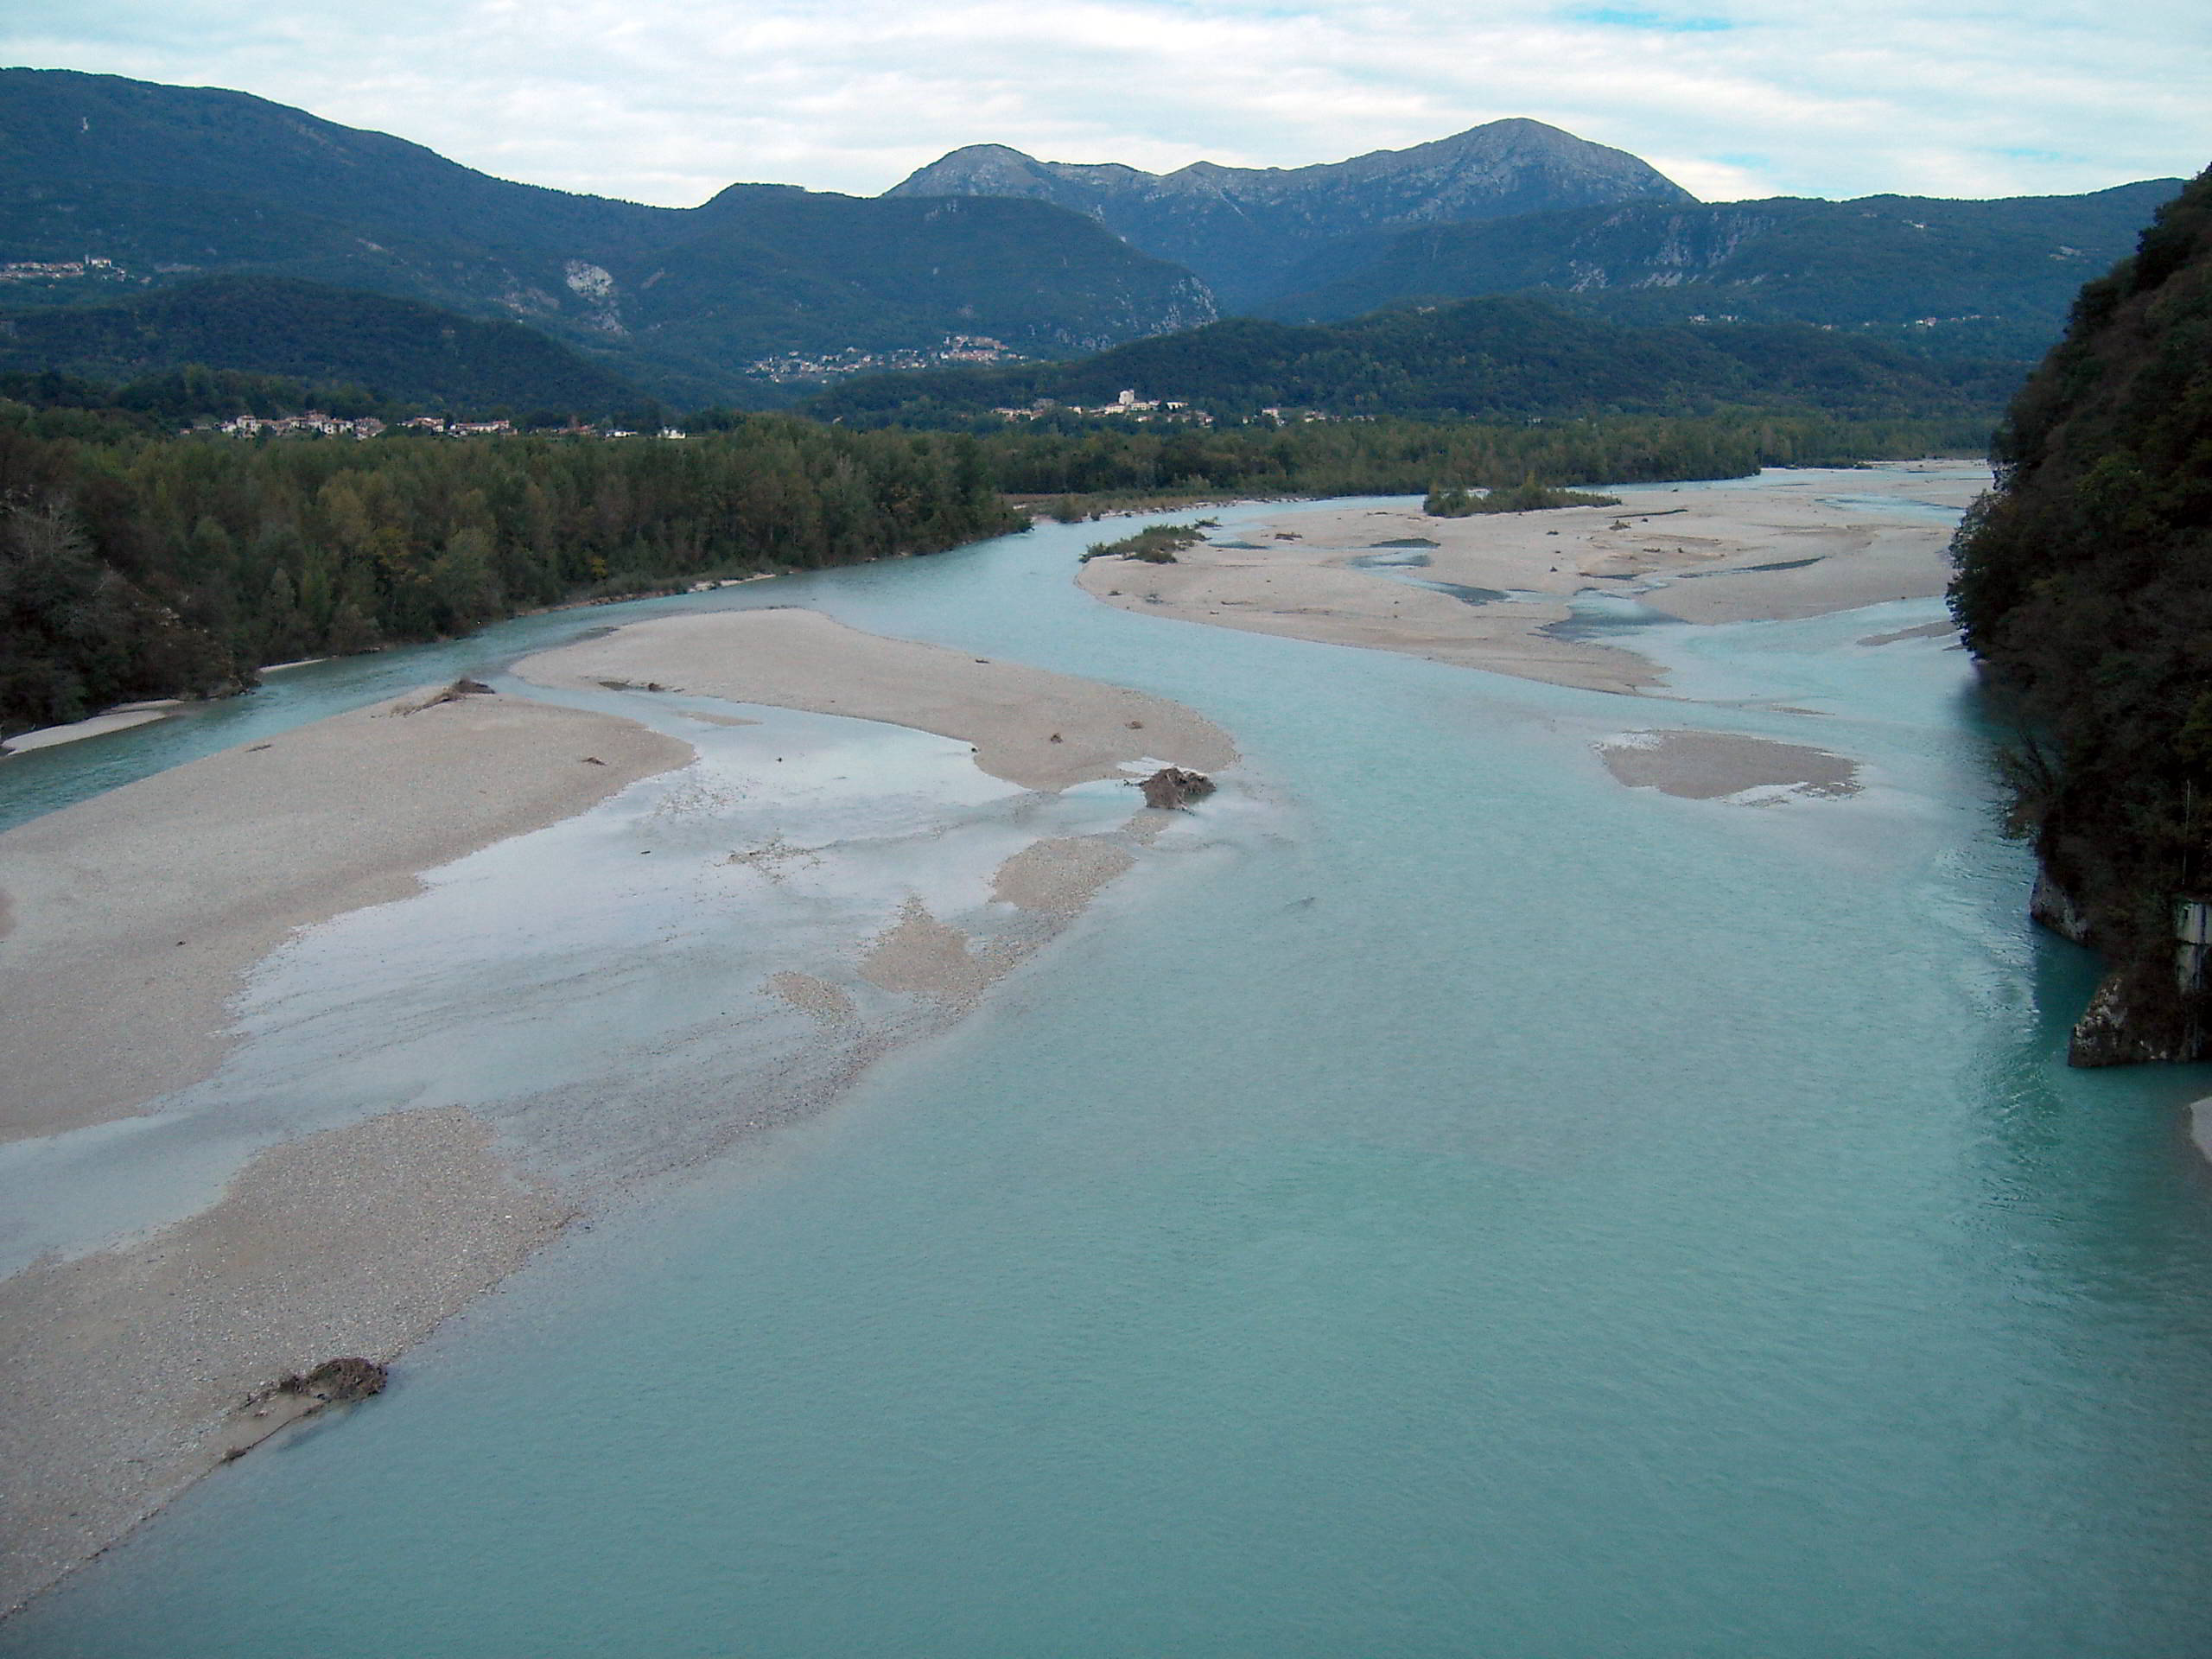 The Tagliamento in Friuli, northern Italy, is one of the last wild rivers in Europe.